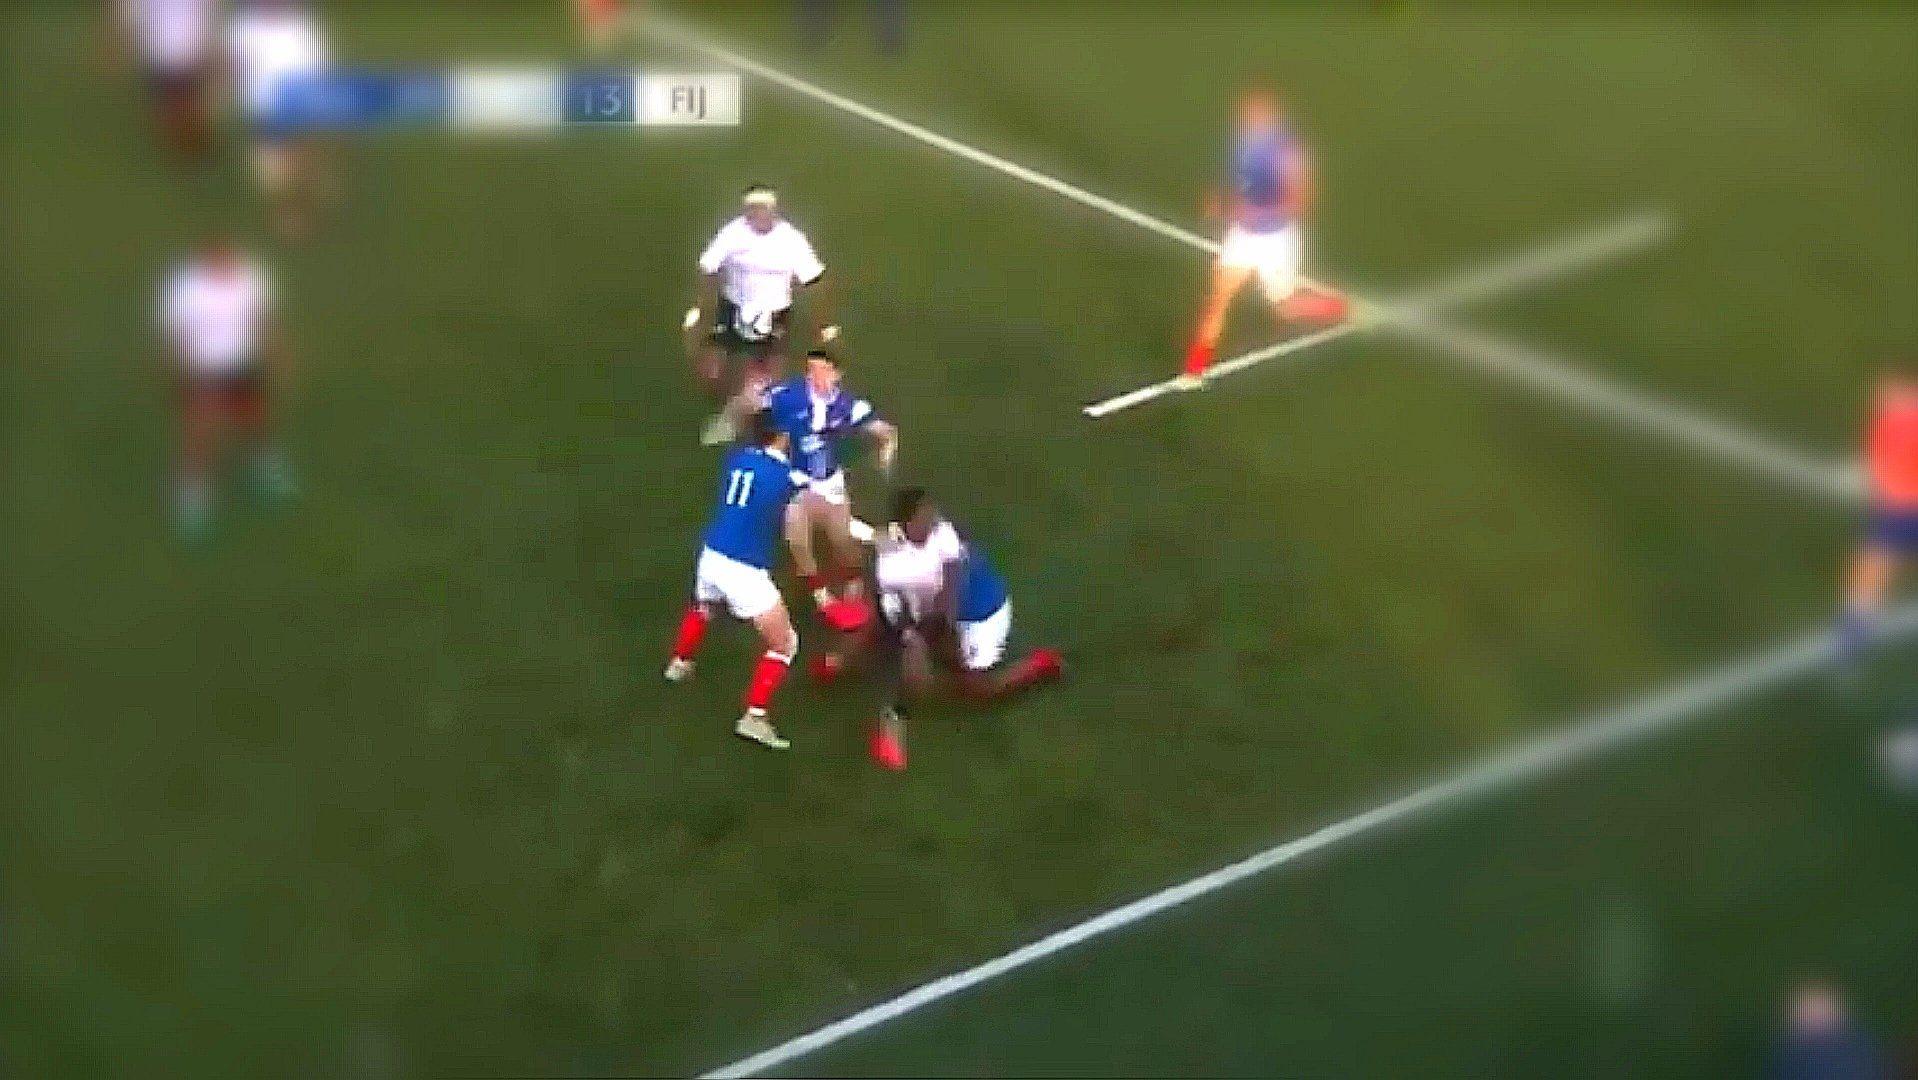 Staggering video of Fiji U20s prodigy makes SBW look hamfisted